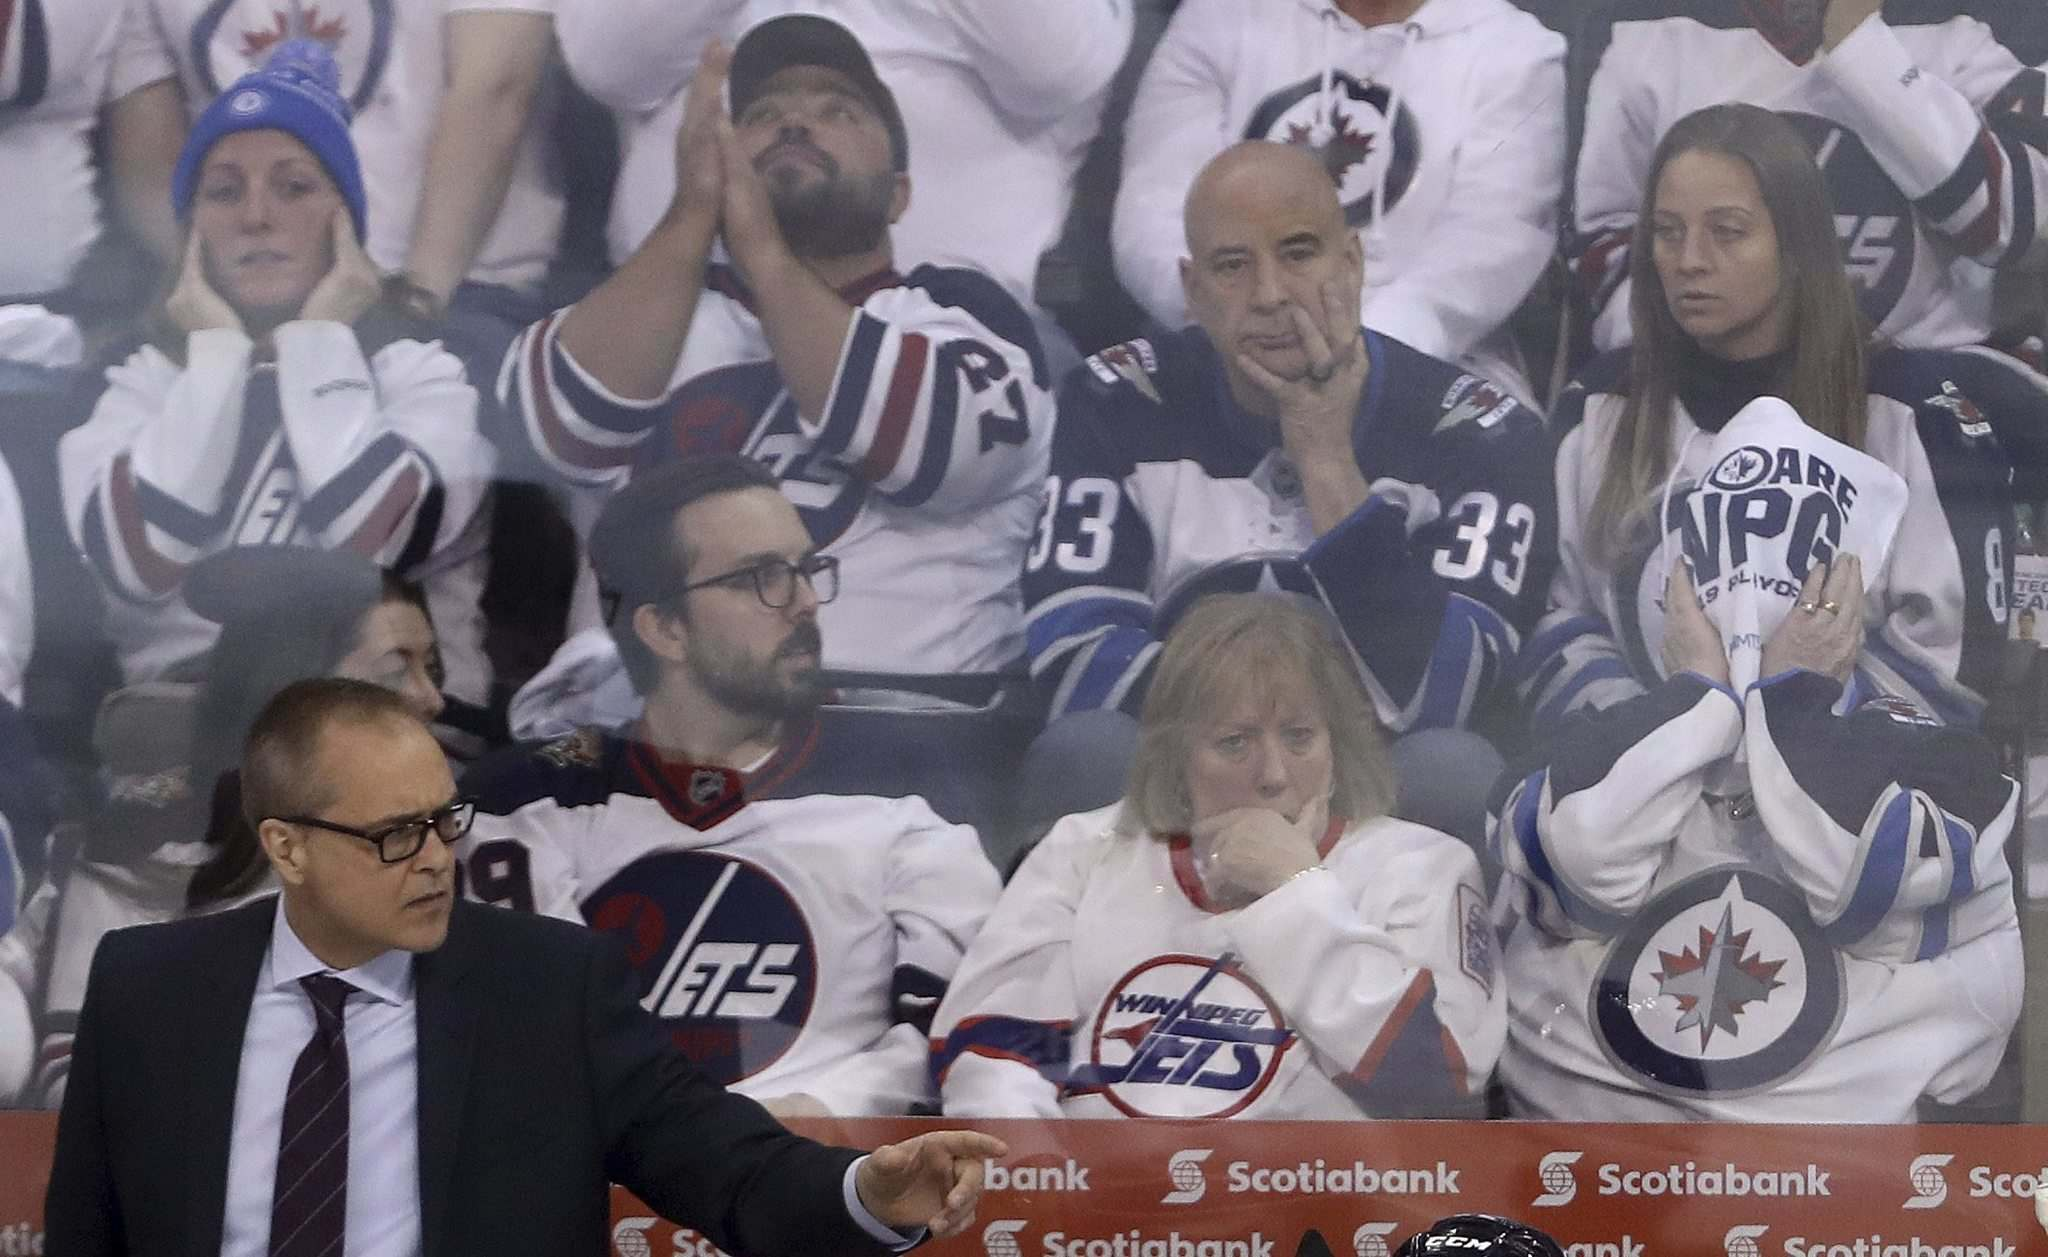 Jets fans can be excused for being on edge, but head coach Paul Maurice says his squad has to find its confidence heading into Sunday's Game 3 in St. Louis. (Trevor Hagan / Winnipeg Free Press)